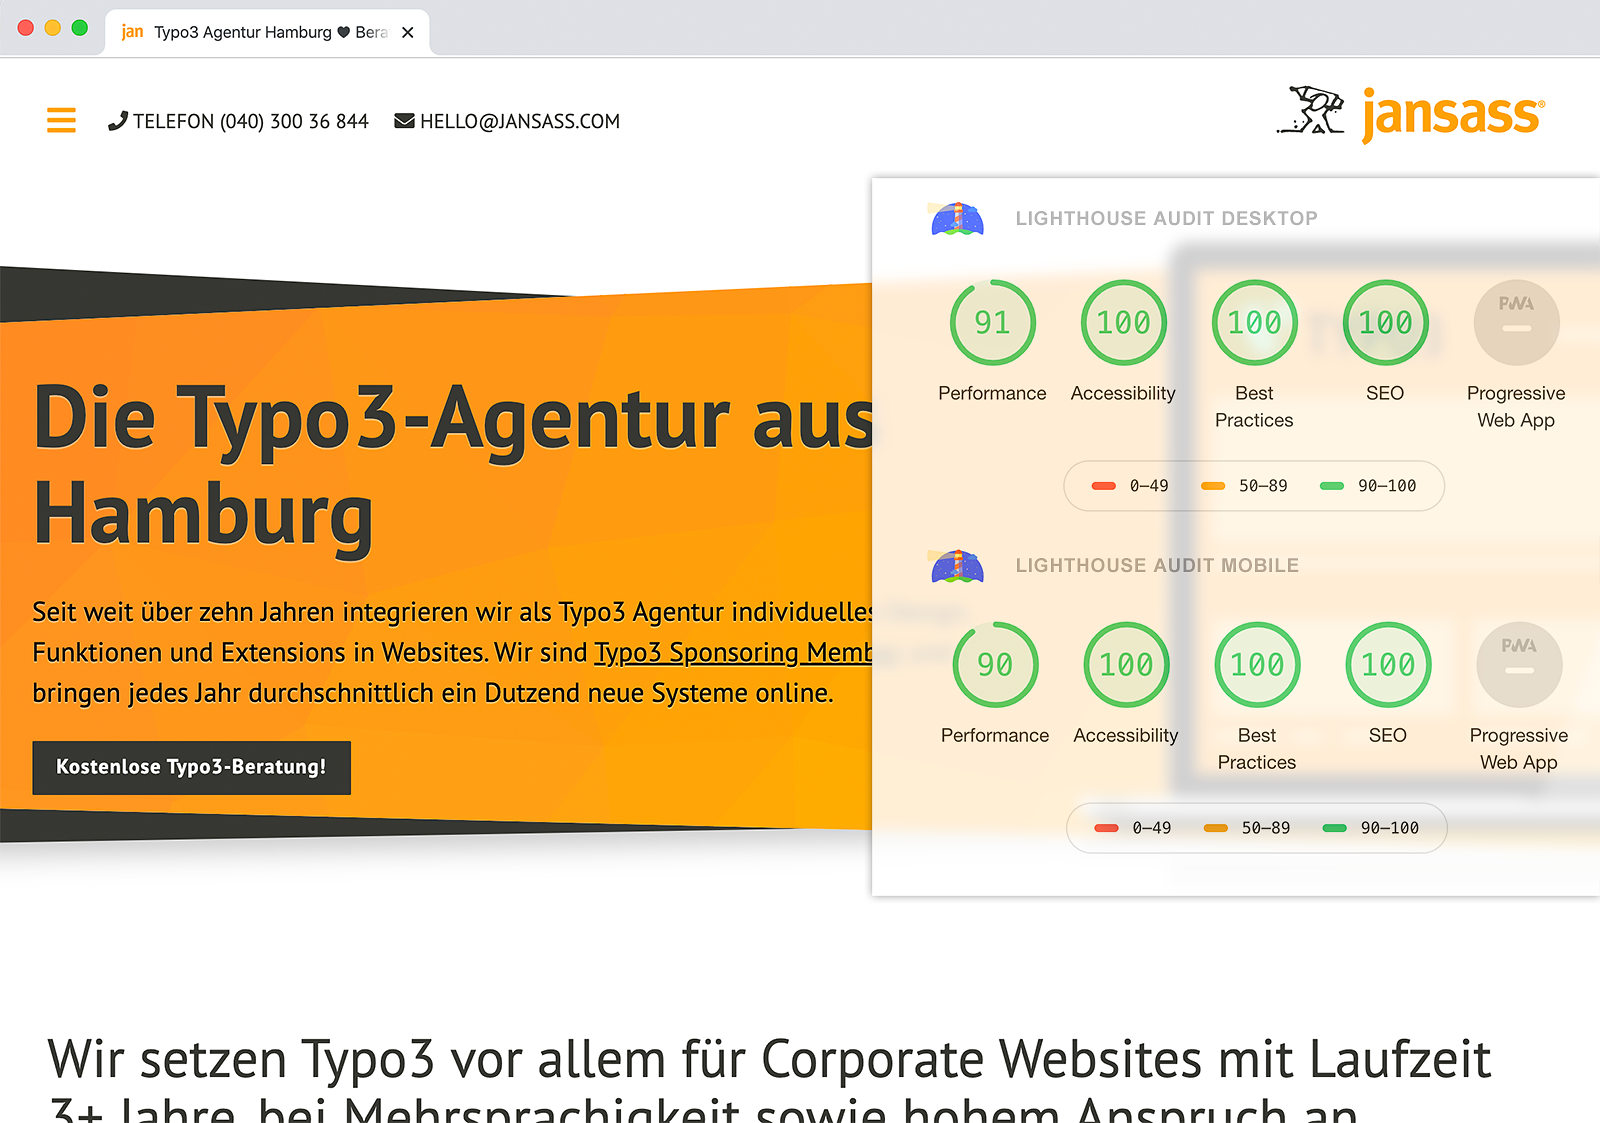 Typo3 Speed + SEO-Optimierung mit Lighthouse Audits